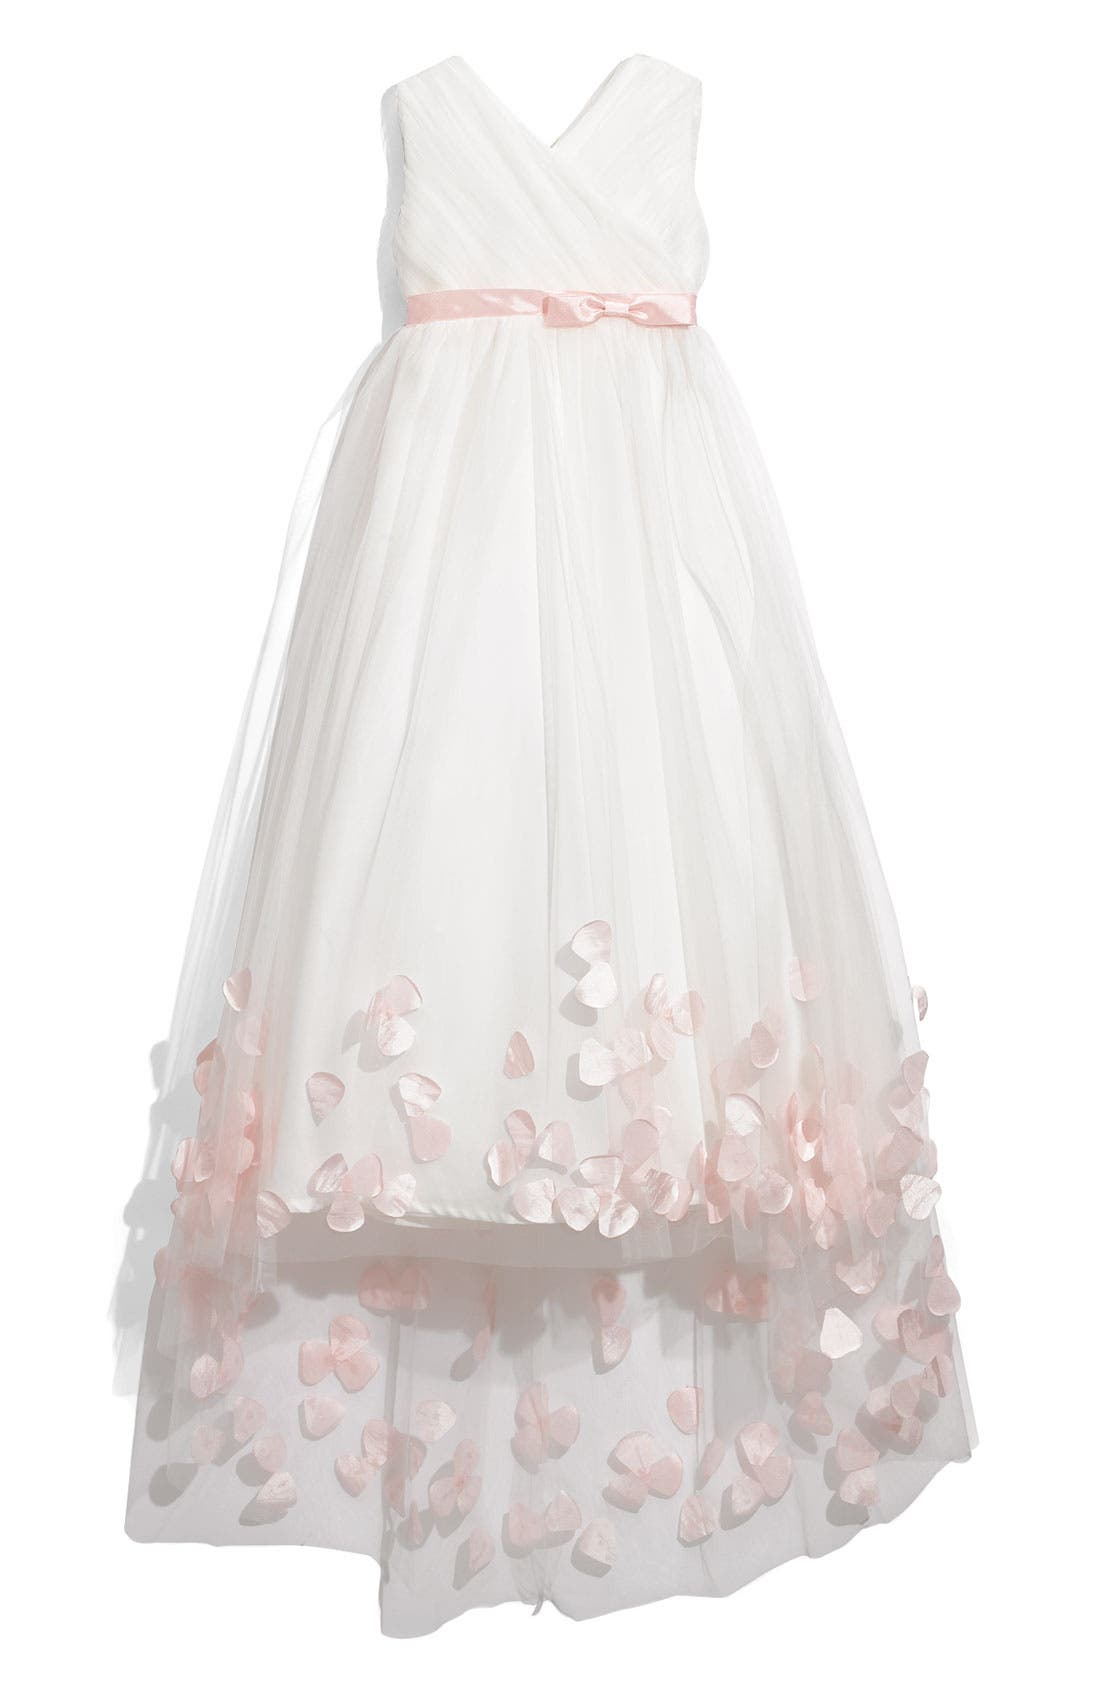 Main Image - Joan Calabrese for Mon Cheri Tulle & Taffeta Floor Length Dress (Little Girls & Big Girls)